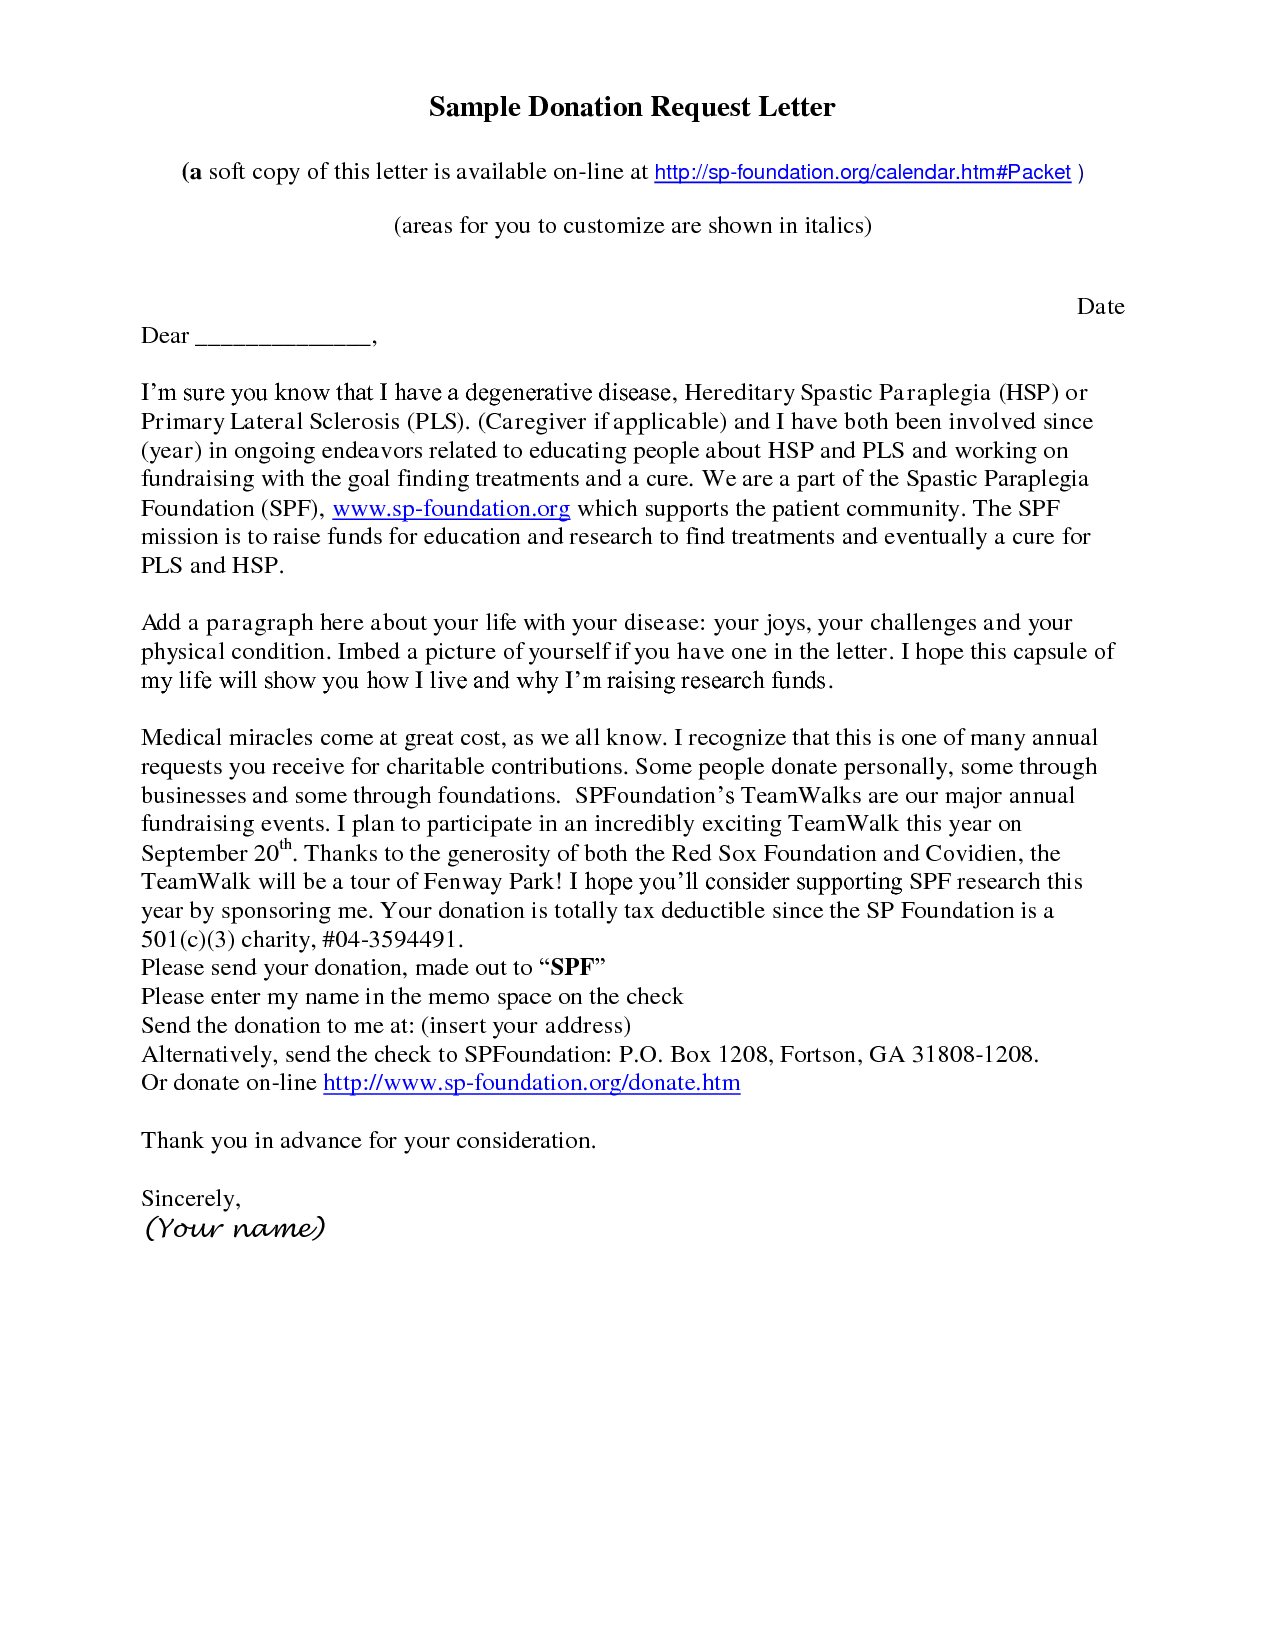 Non Profit Donation Request Letter Template - How to Write A solicitation Letter for Donations Choice Image